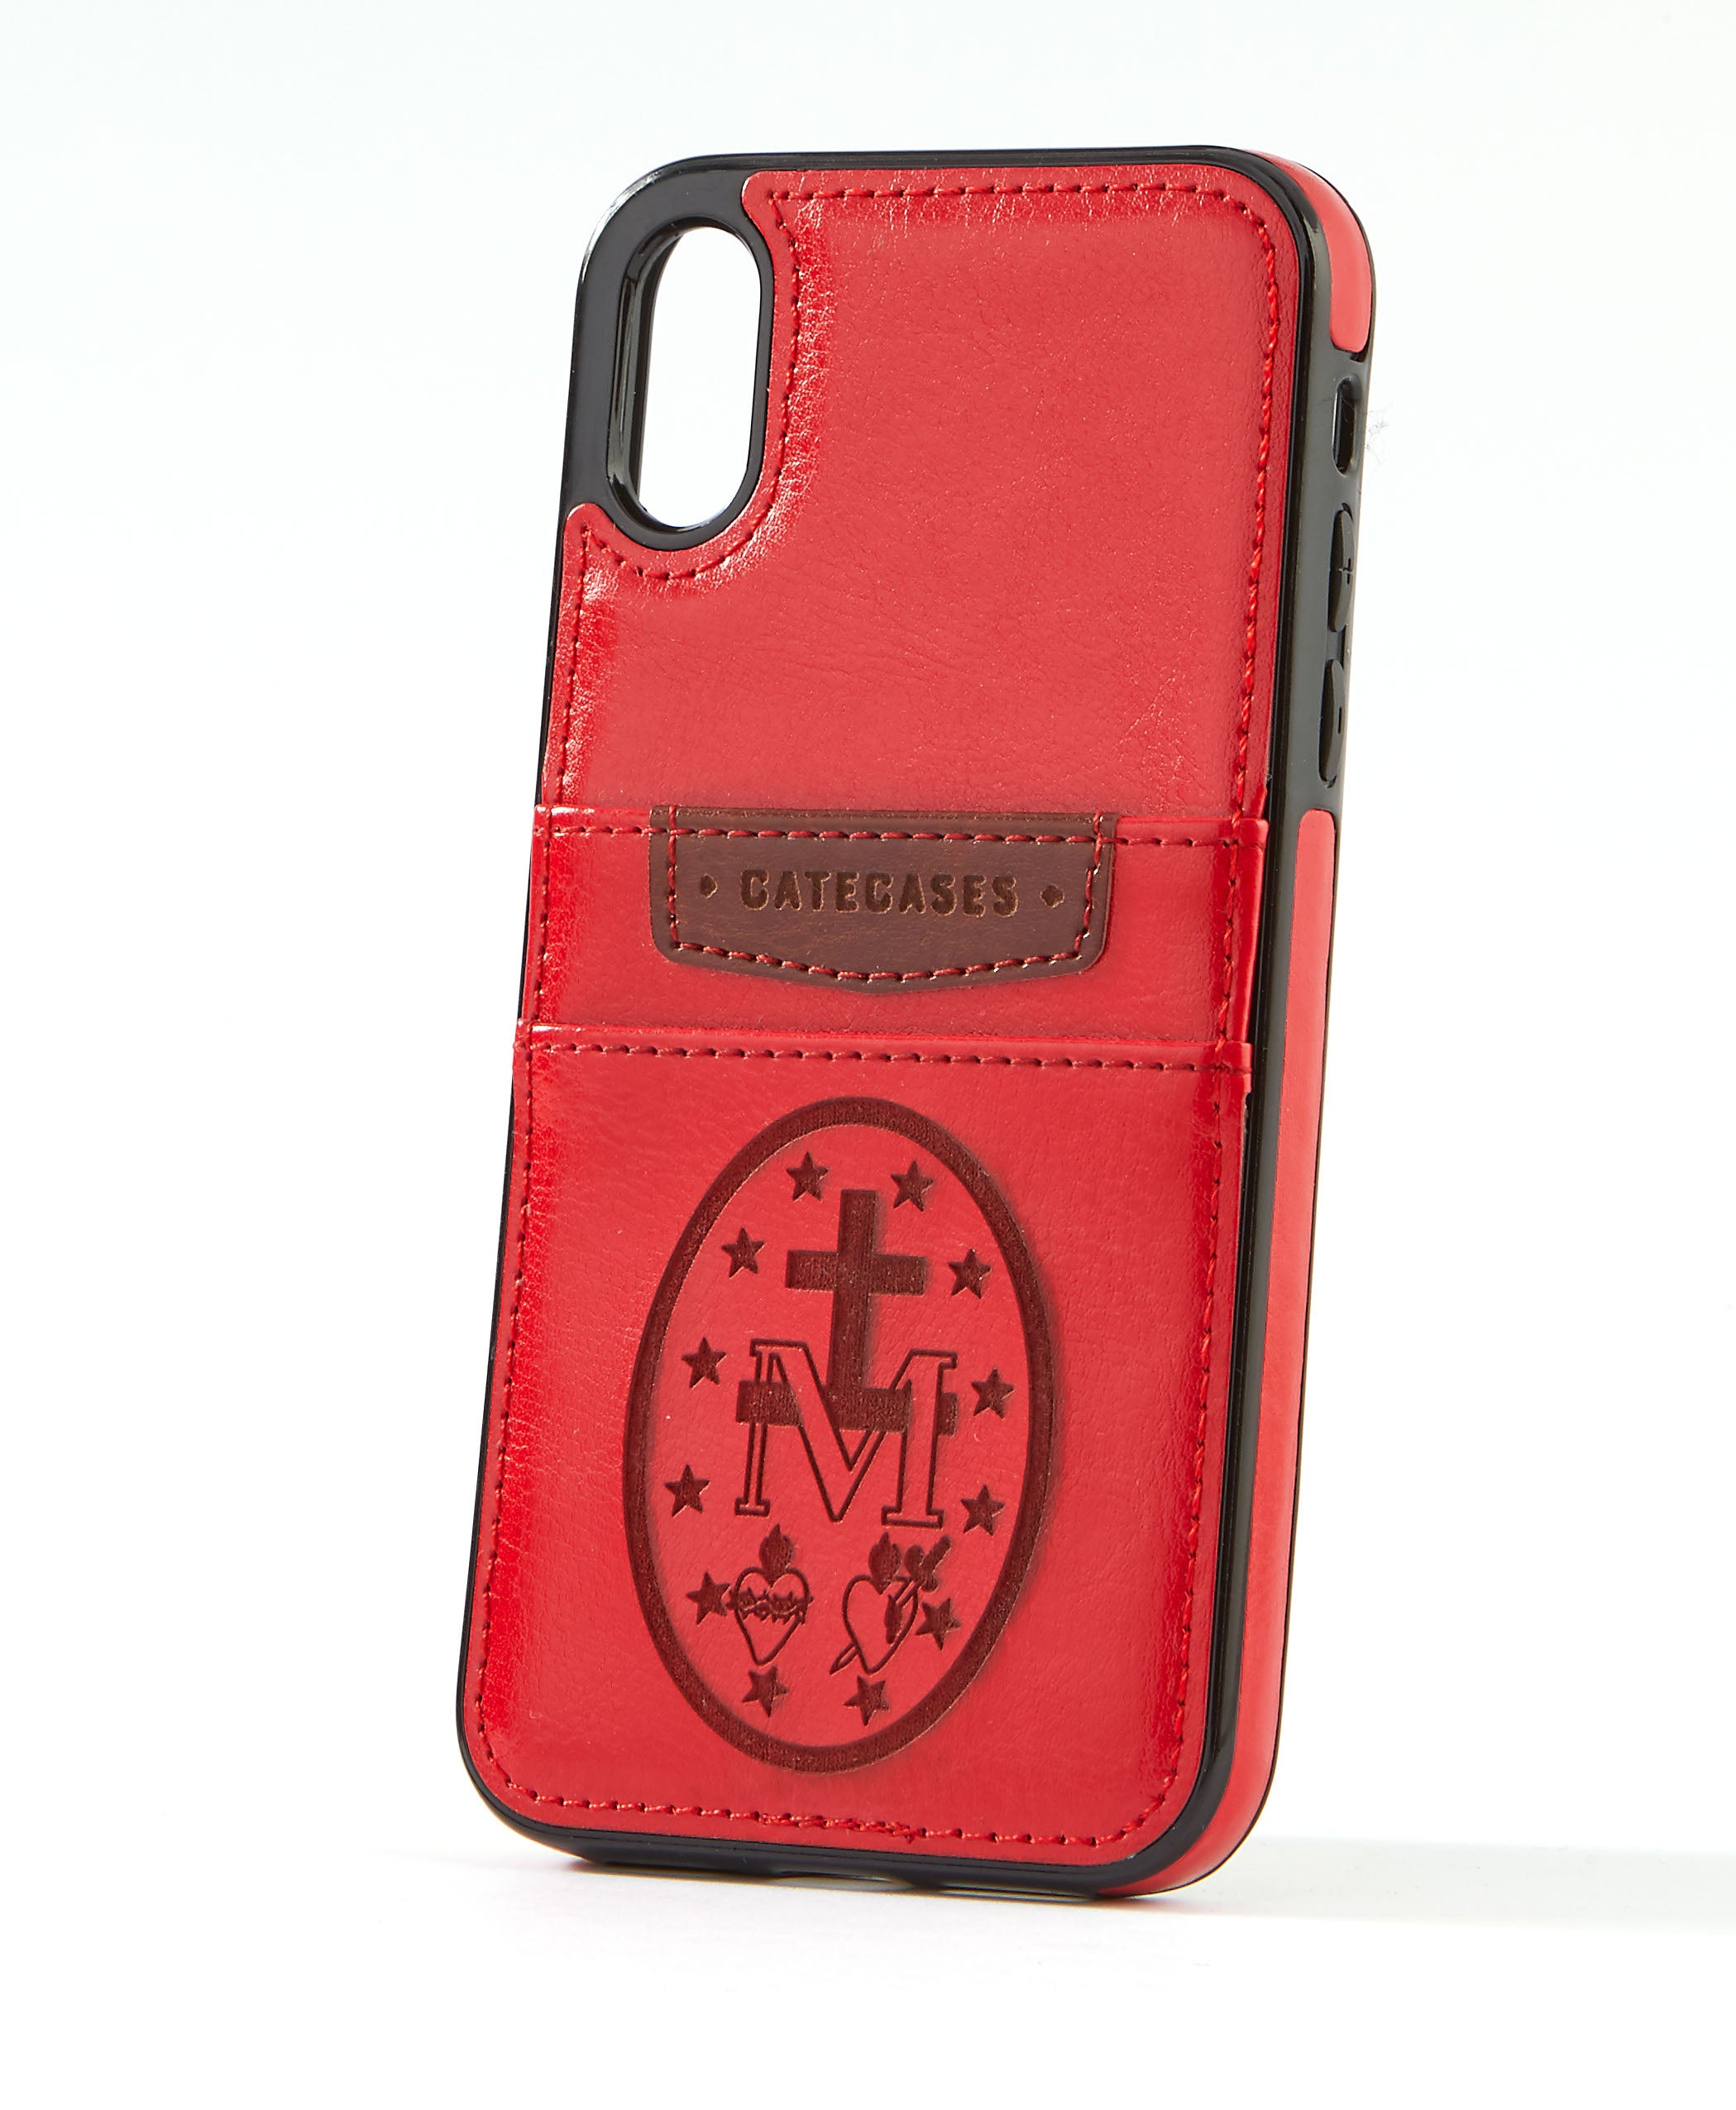 Miraculous Medal Red Leather Card Case for iPhone X/XS